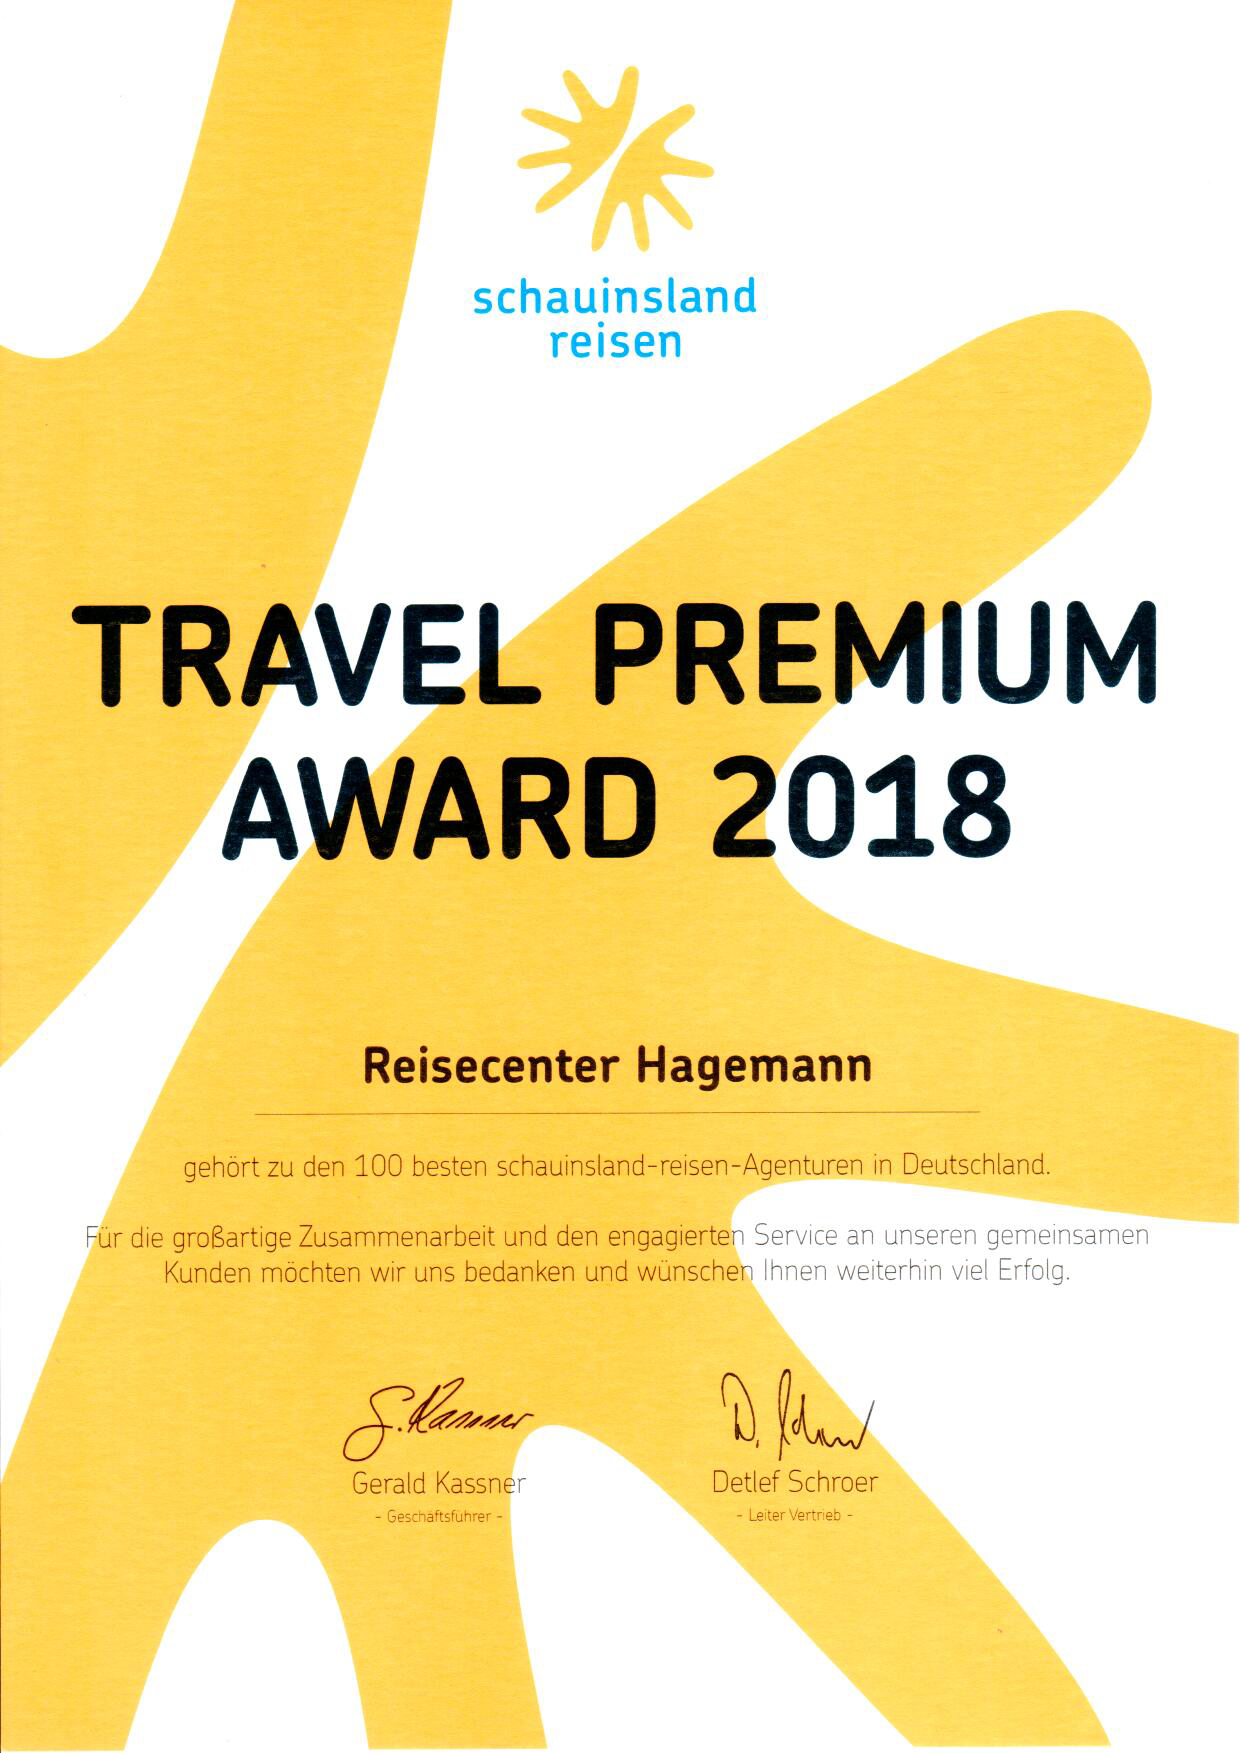 Travel Premium Award 2018